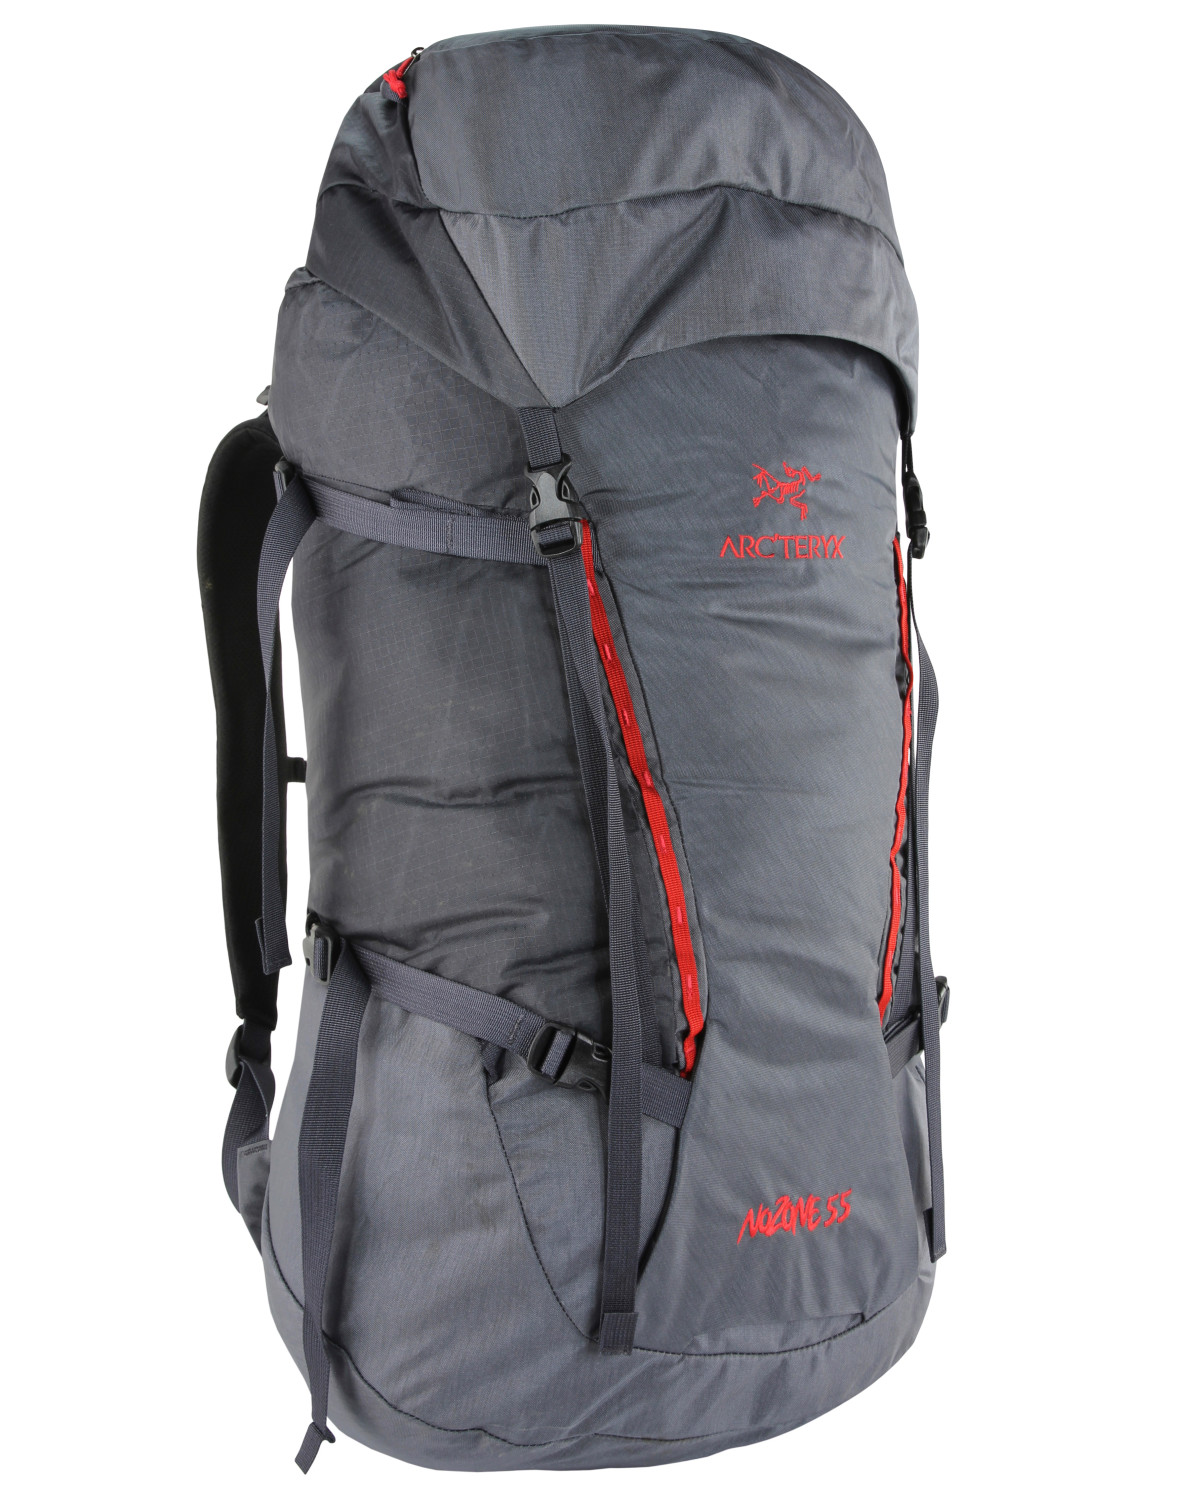 Nozone 55 Backpack